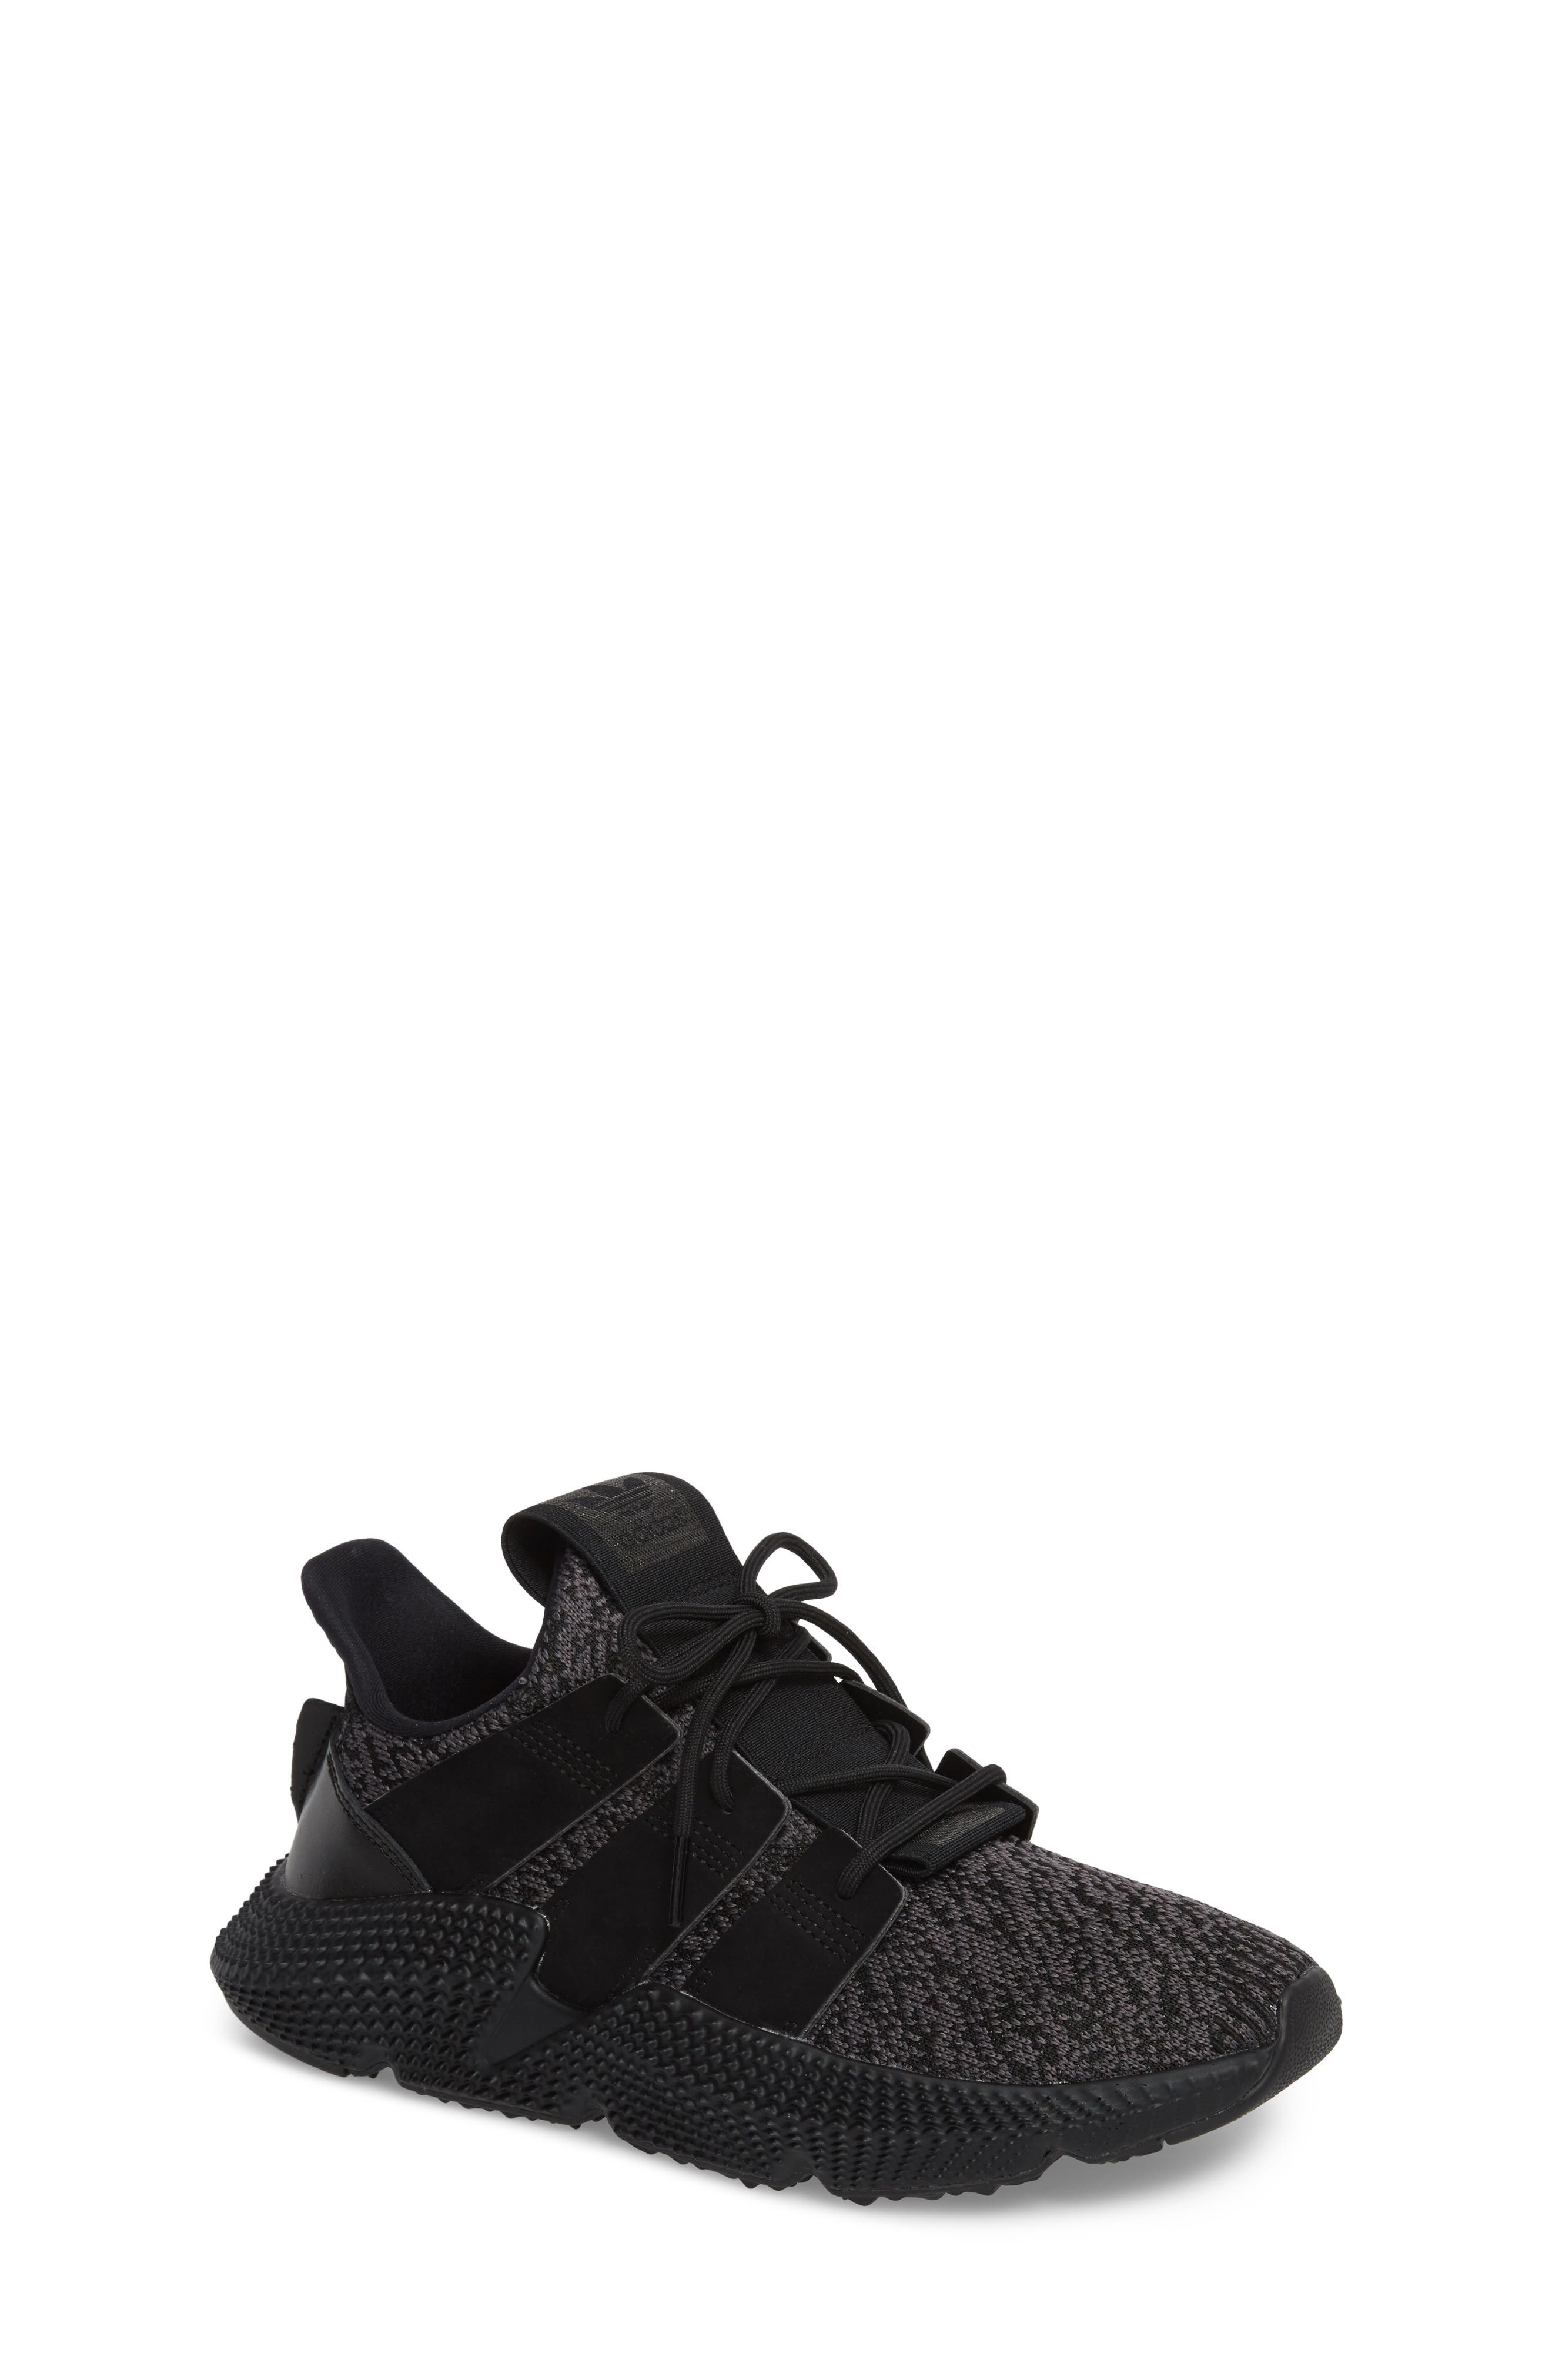 Prophere Sneaker,                         Main,                         color, 001